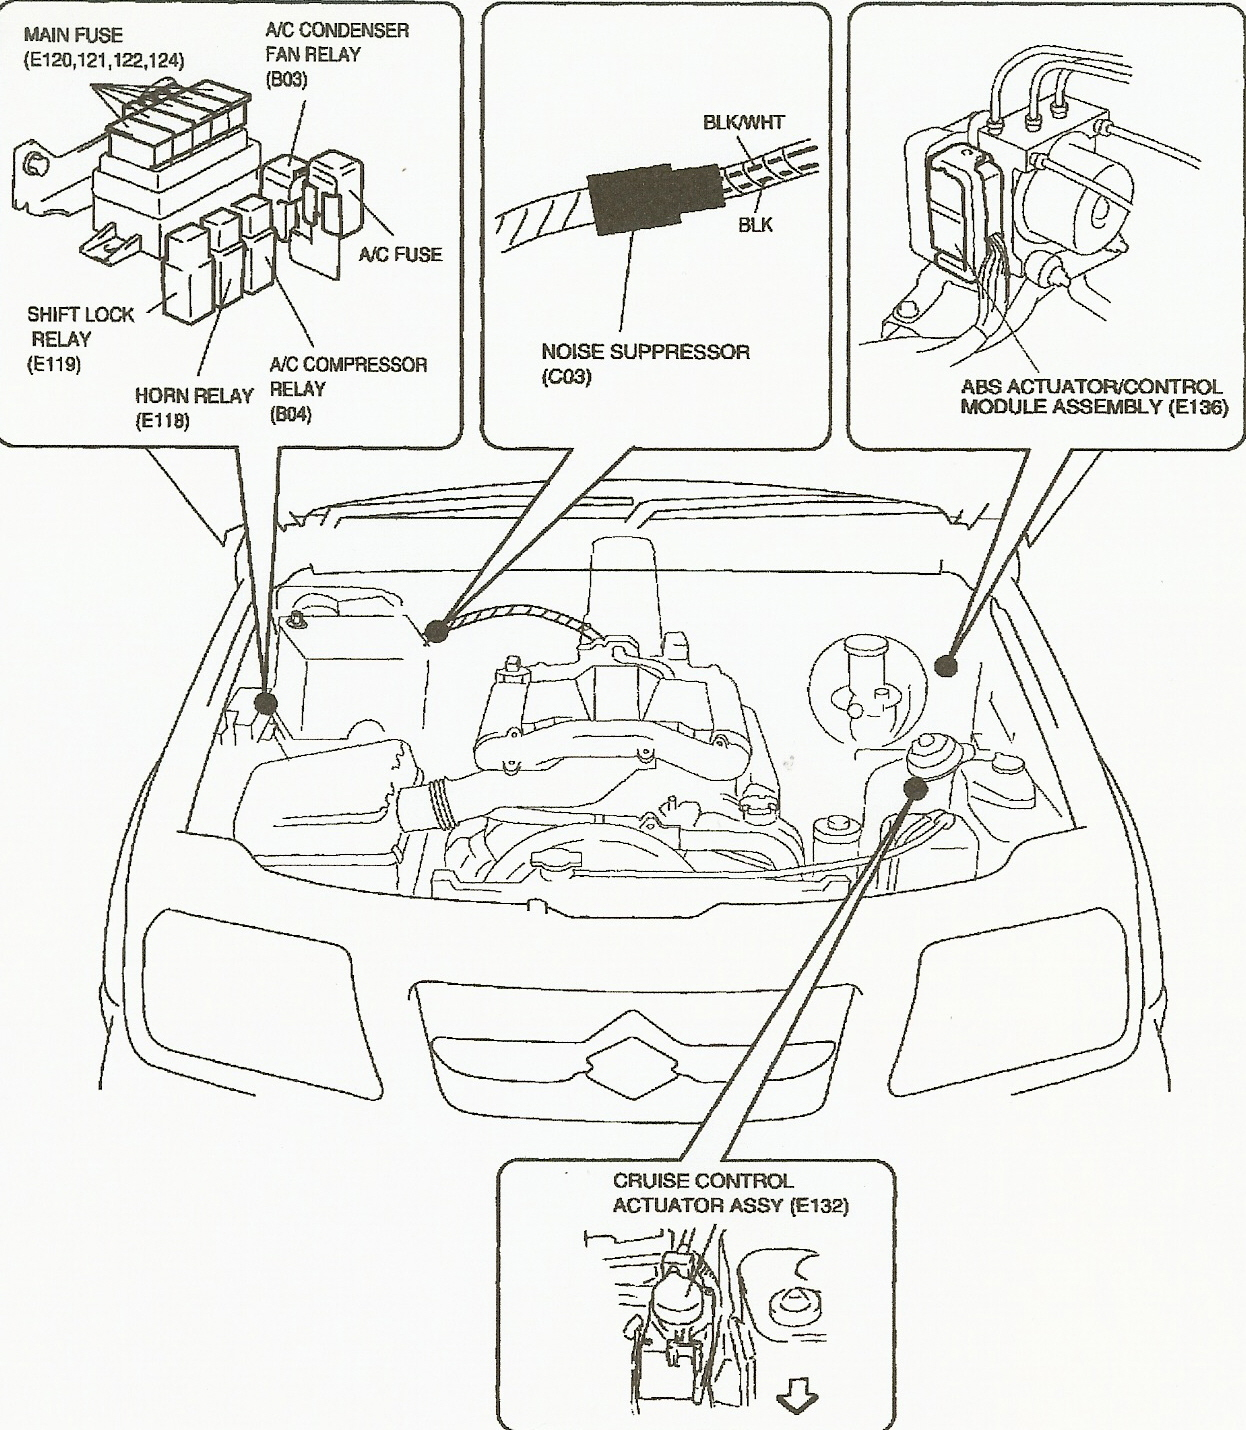 Suzuki Grand Vitara Fuse Box Location